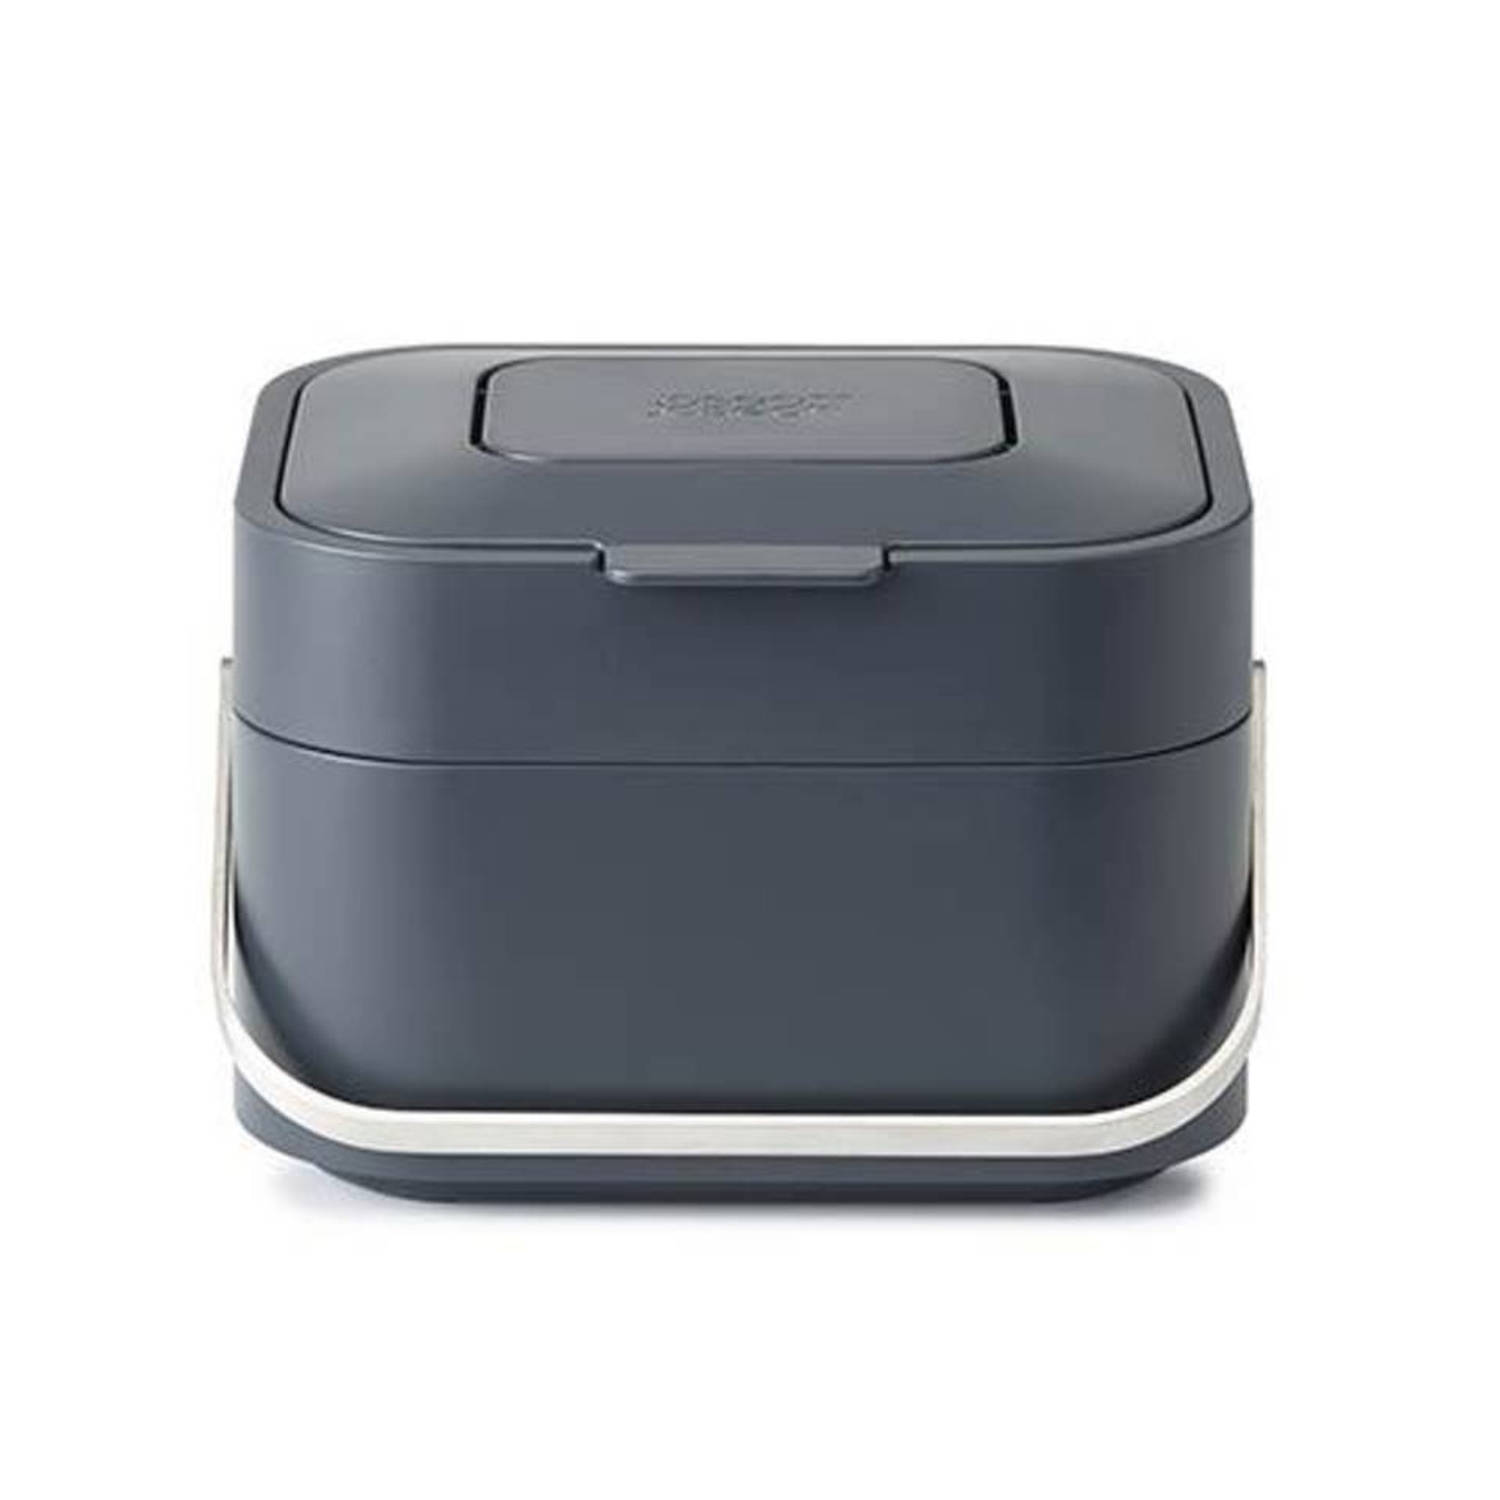 Joseph Joseph Intelligent Waste Stack Graphite - 4 l